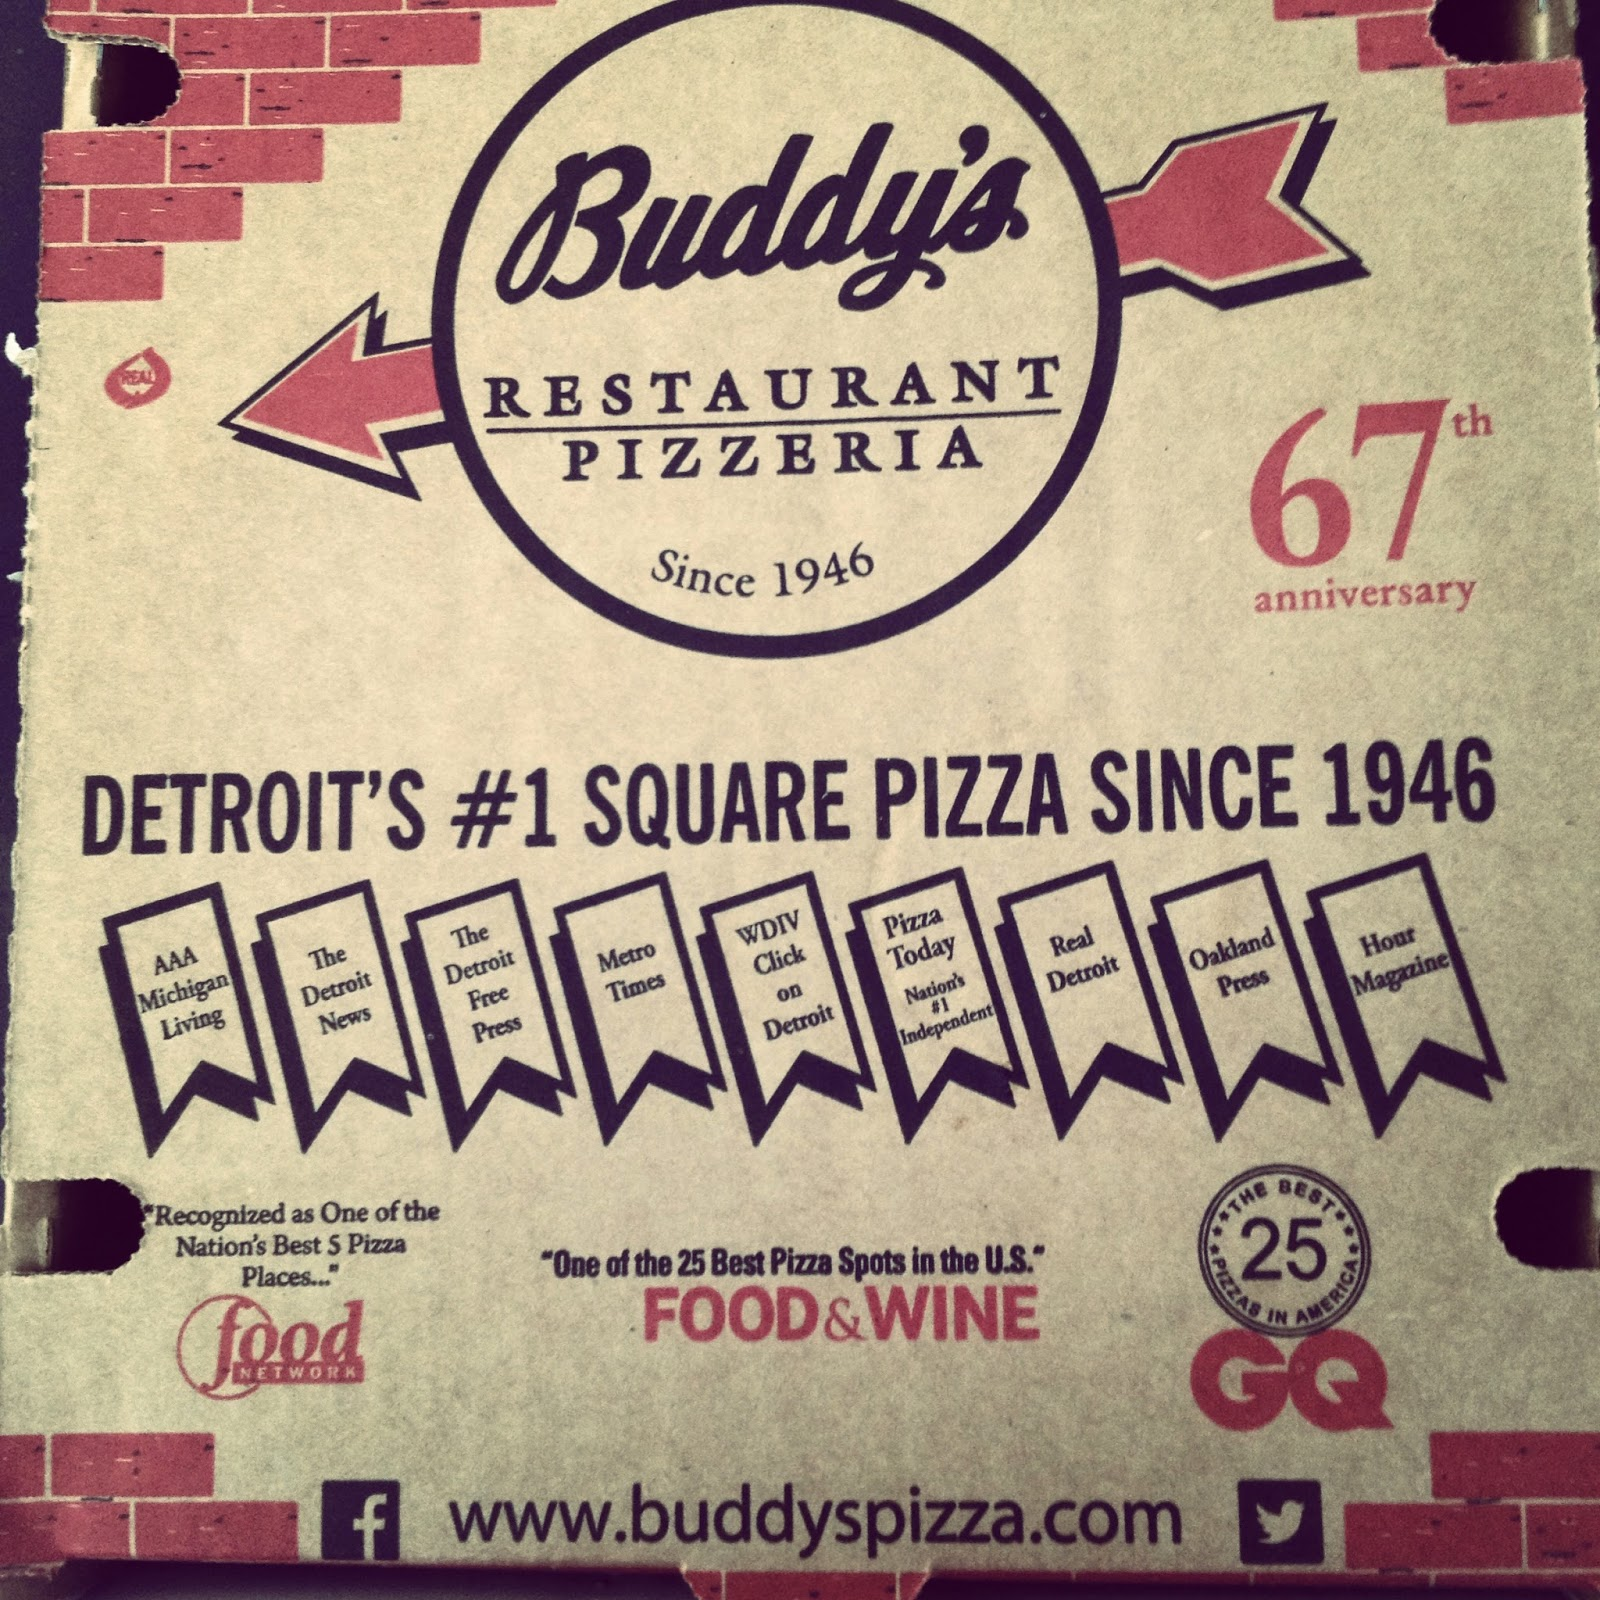 Buddy's Pizza Box Detroit Awards Vegan Vegetarian